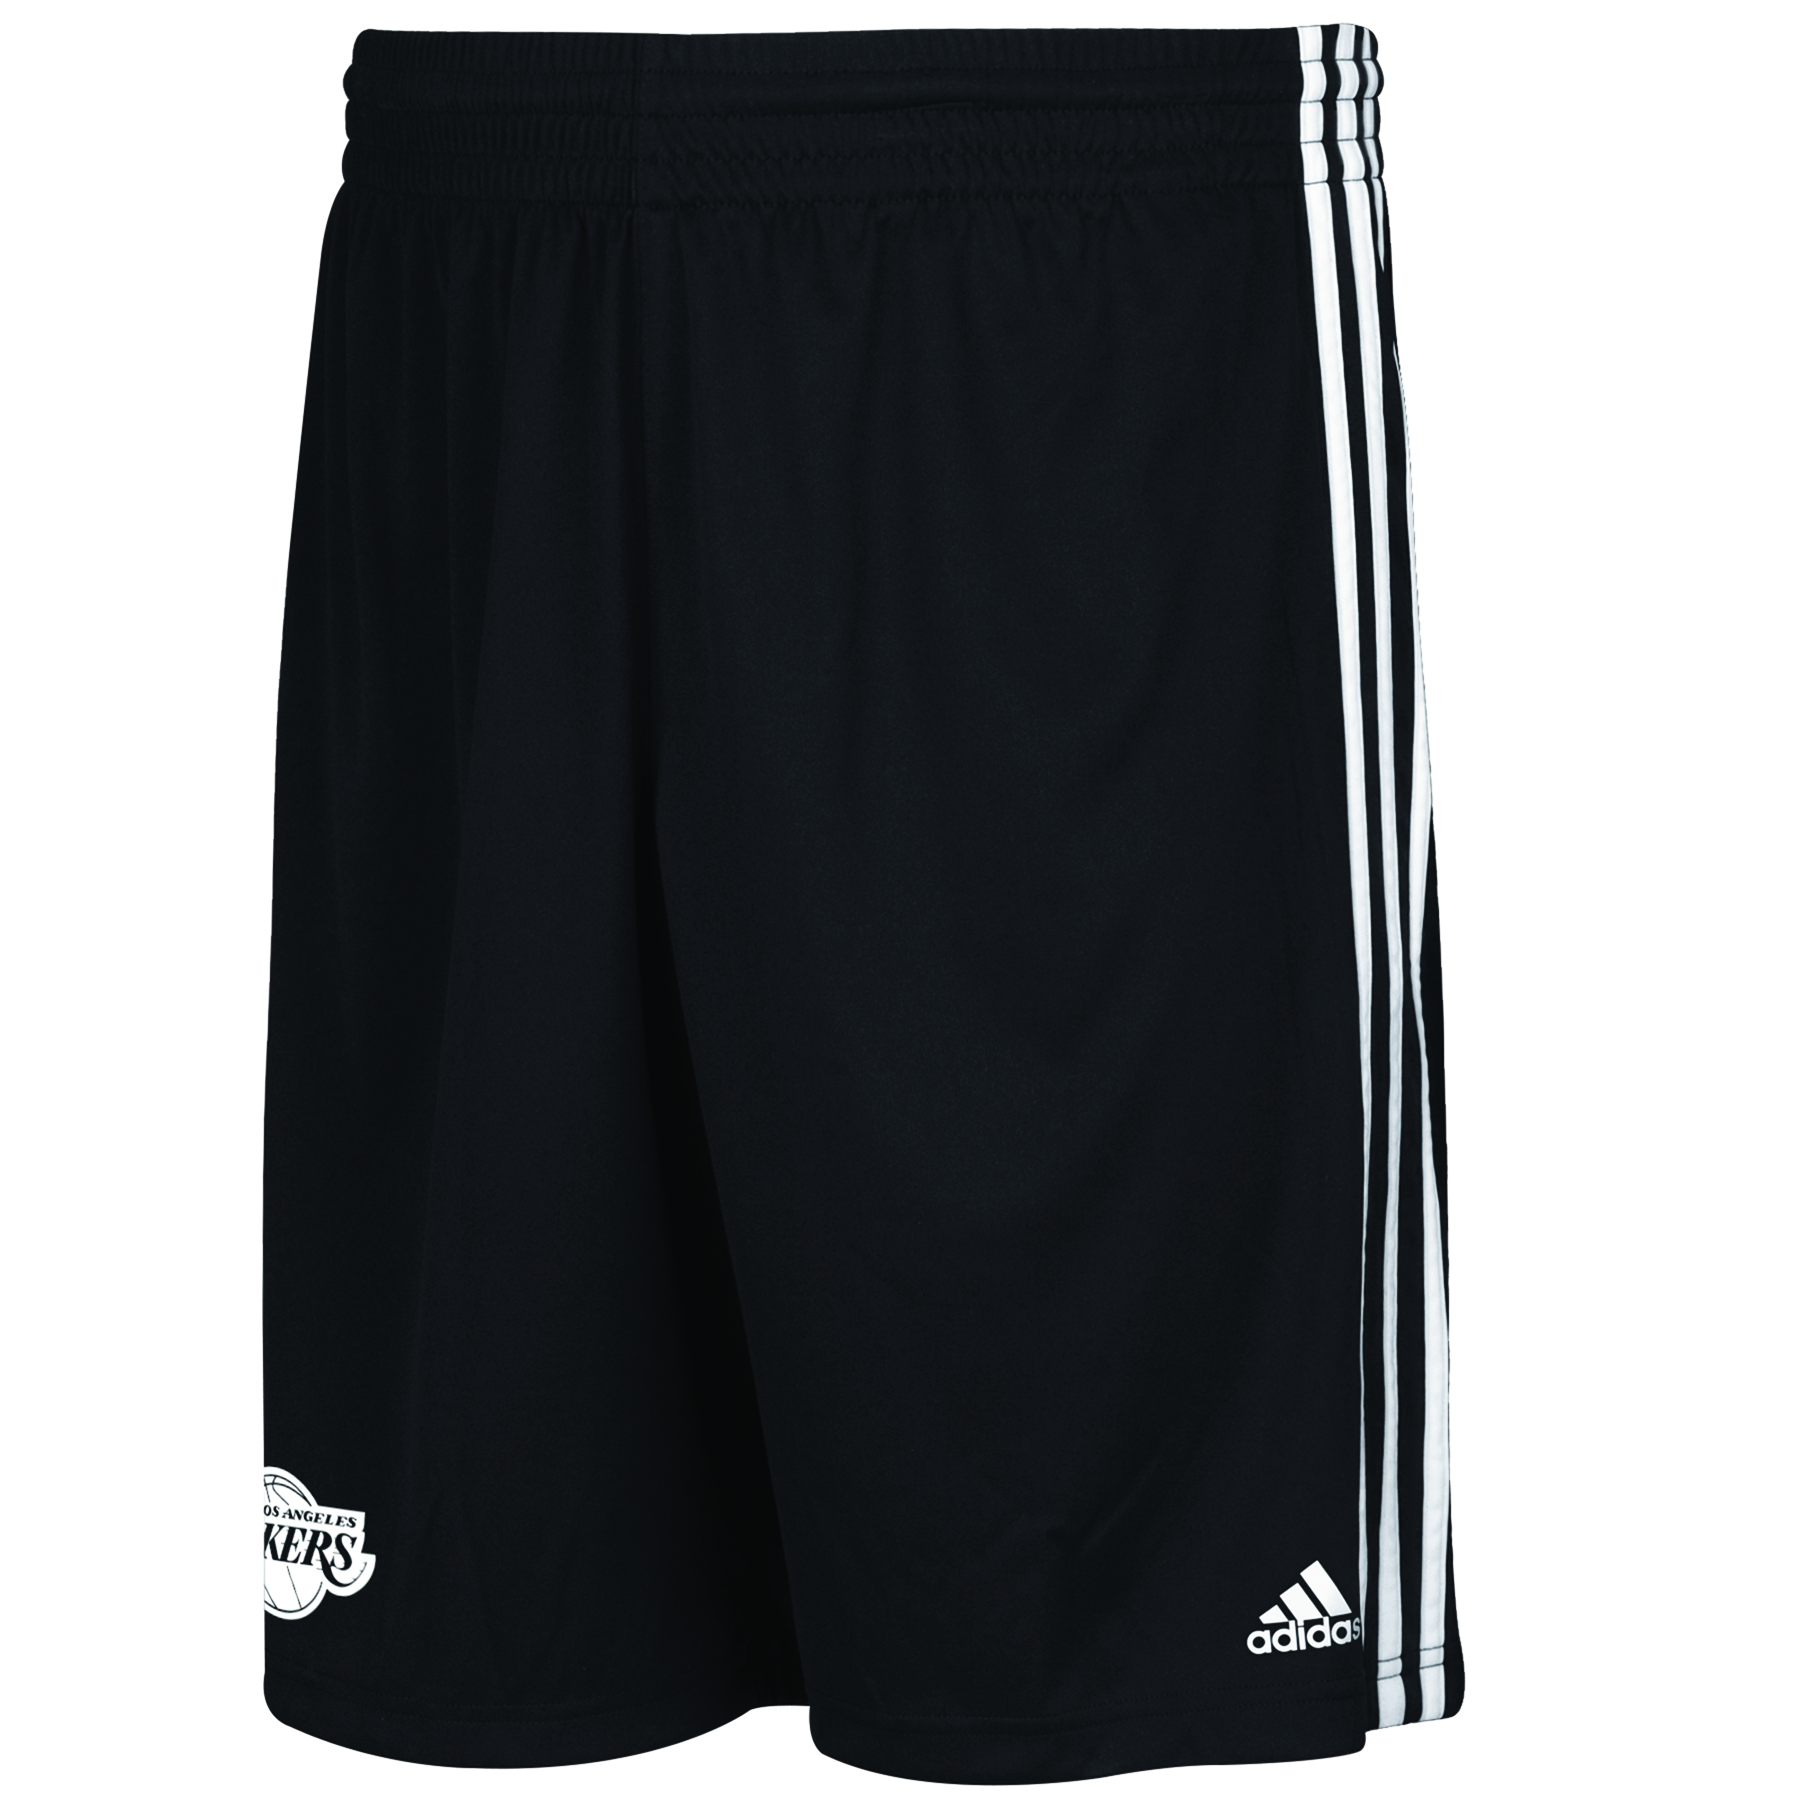 Los Angeles Lakers adidas Logo Short - Mens